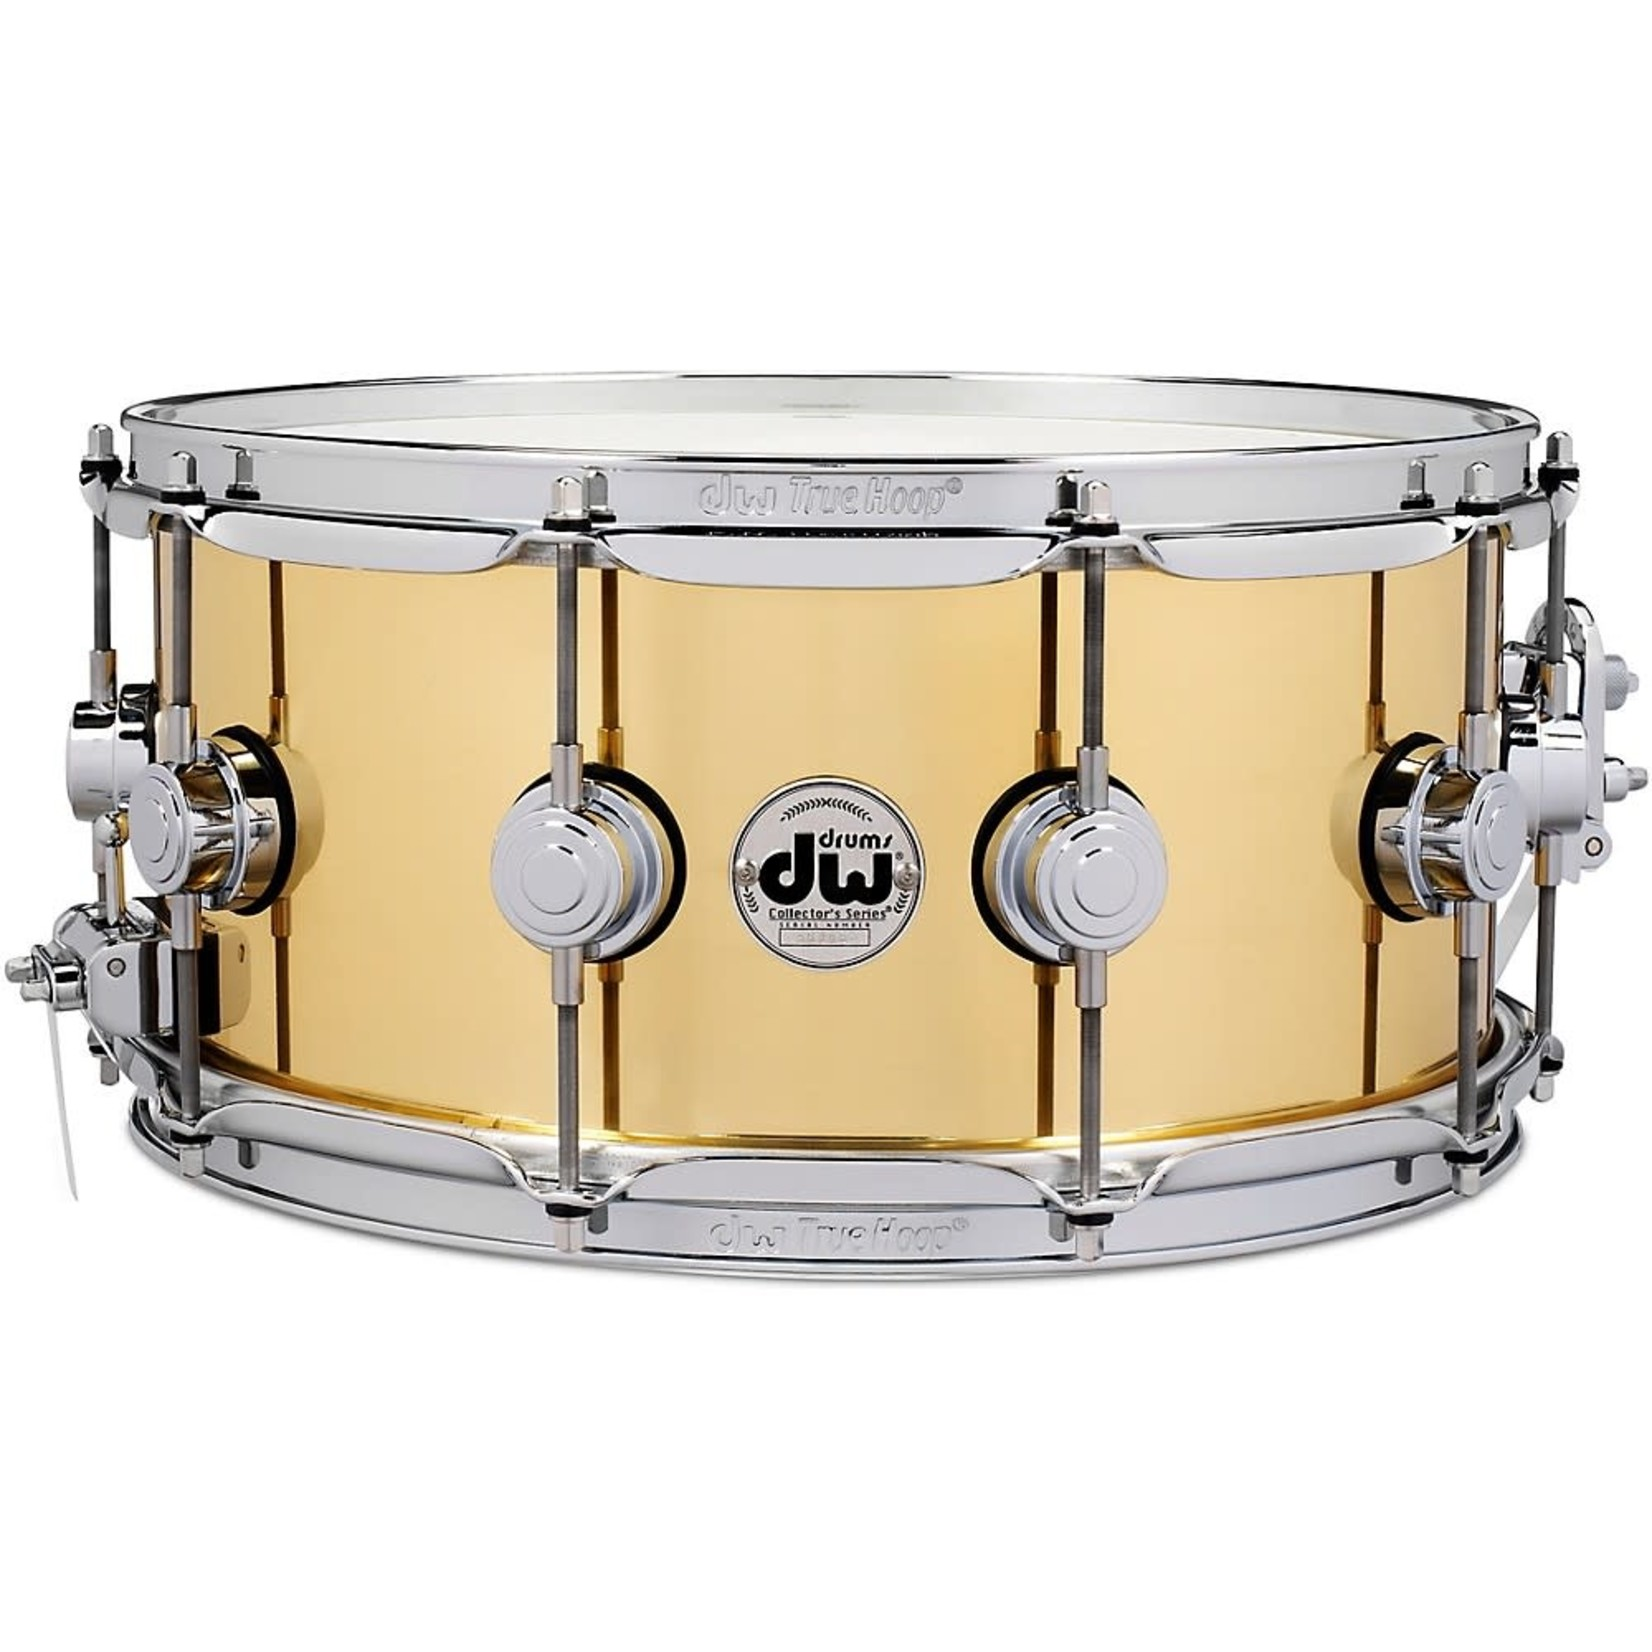 """DW DW SNARE DRUM 6.5x14"""" BELL BRASS SMOOTH FINISH DRVN6514SPC"""